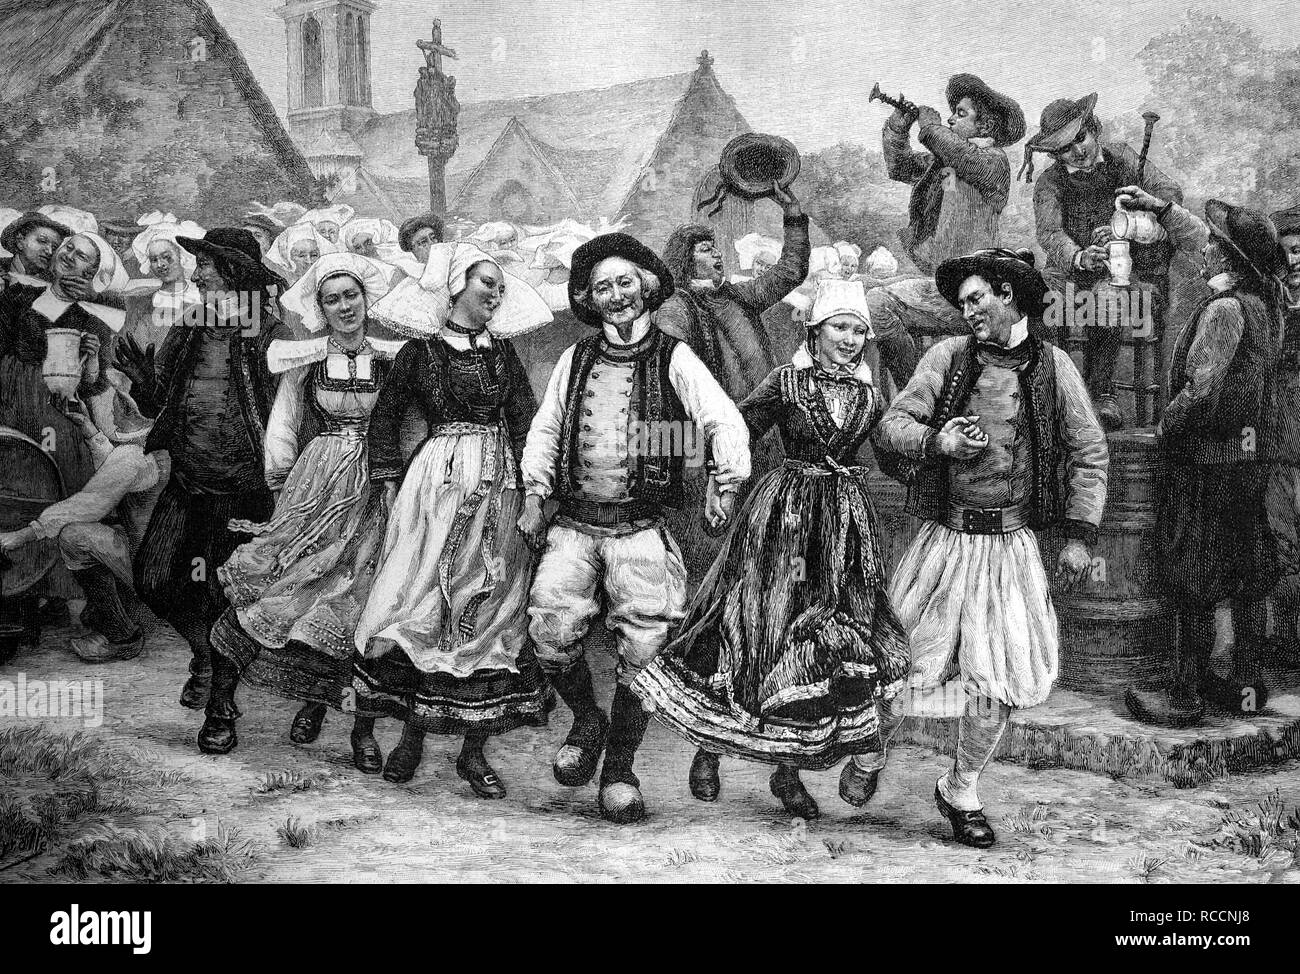 Folk Dance Black and White Stock Photos & Images - Alamy